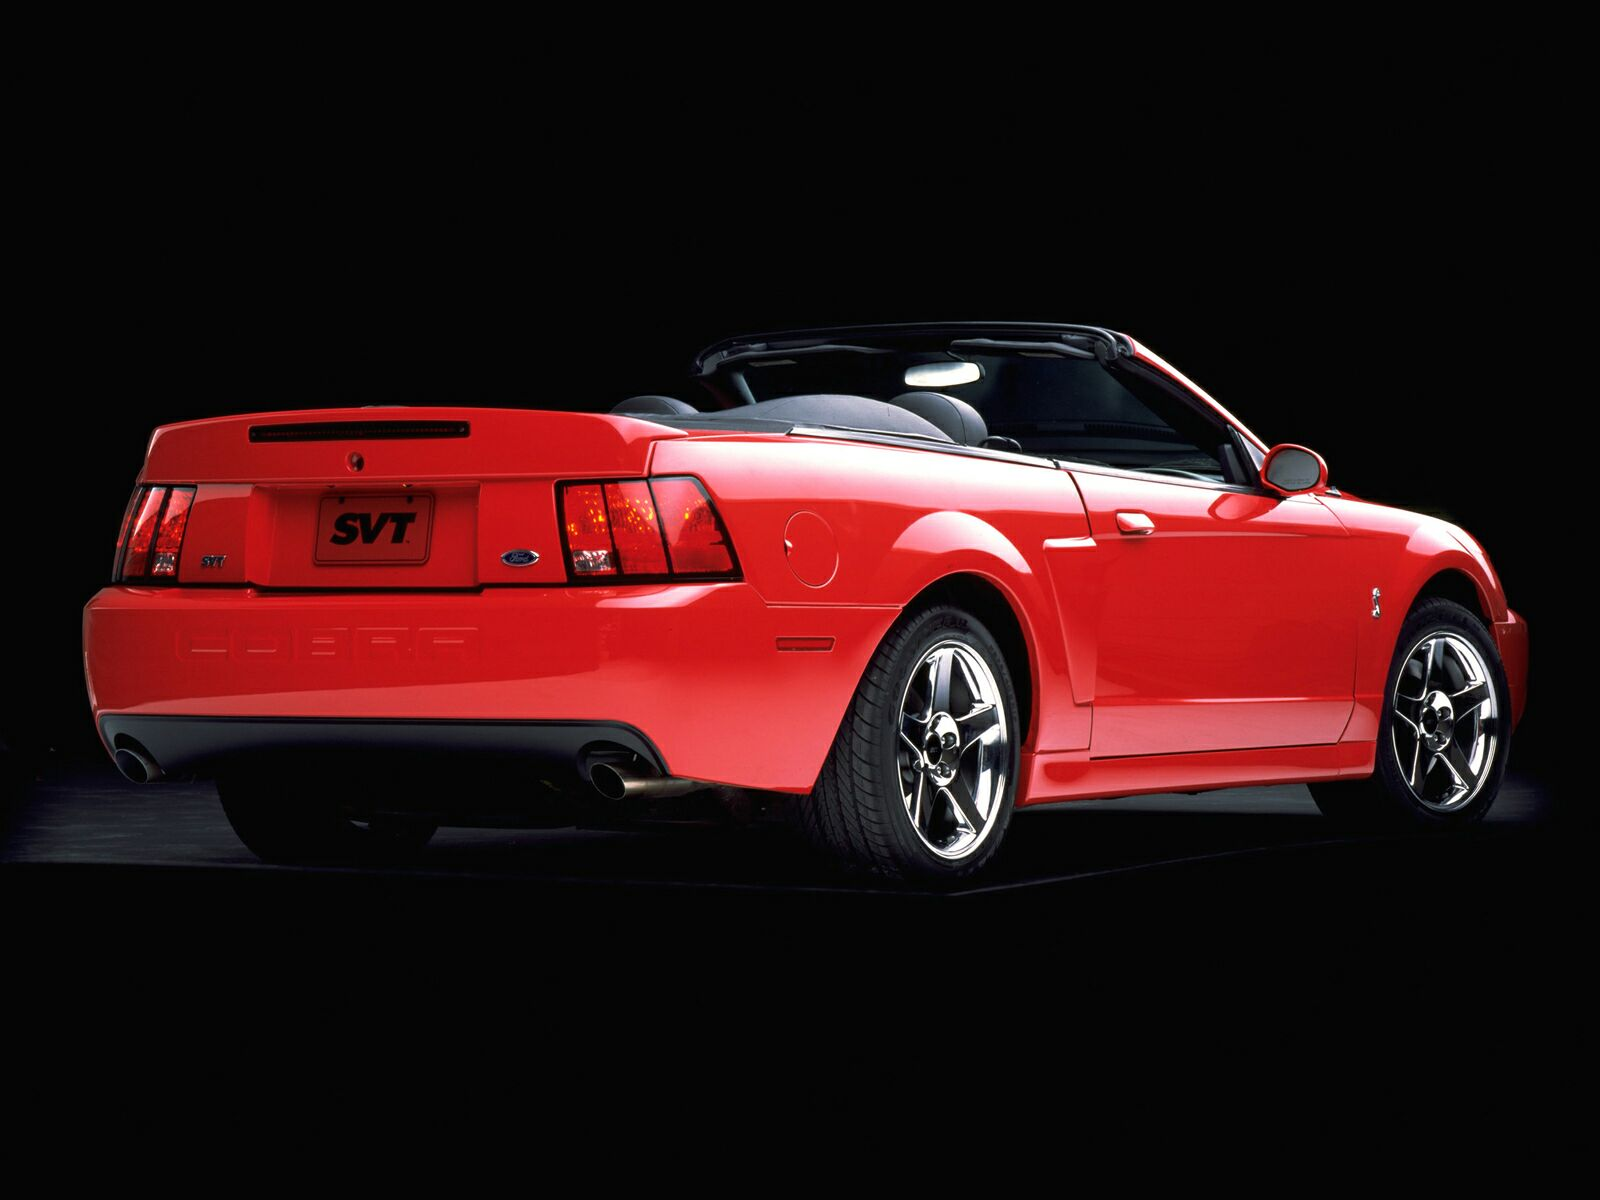 CARS PROJECT All Mustang Cobra Cars Project Pictures and Wallpapers 1600x1200